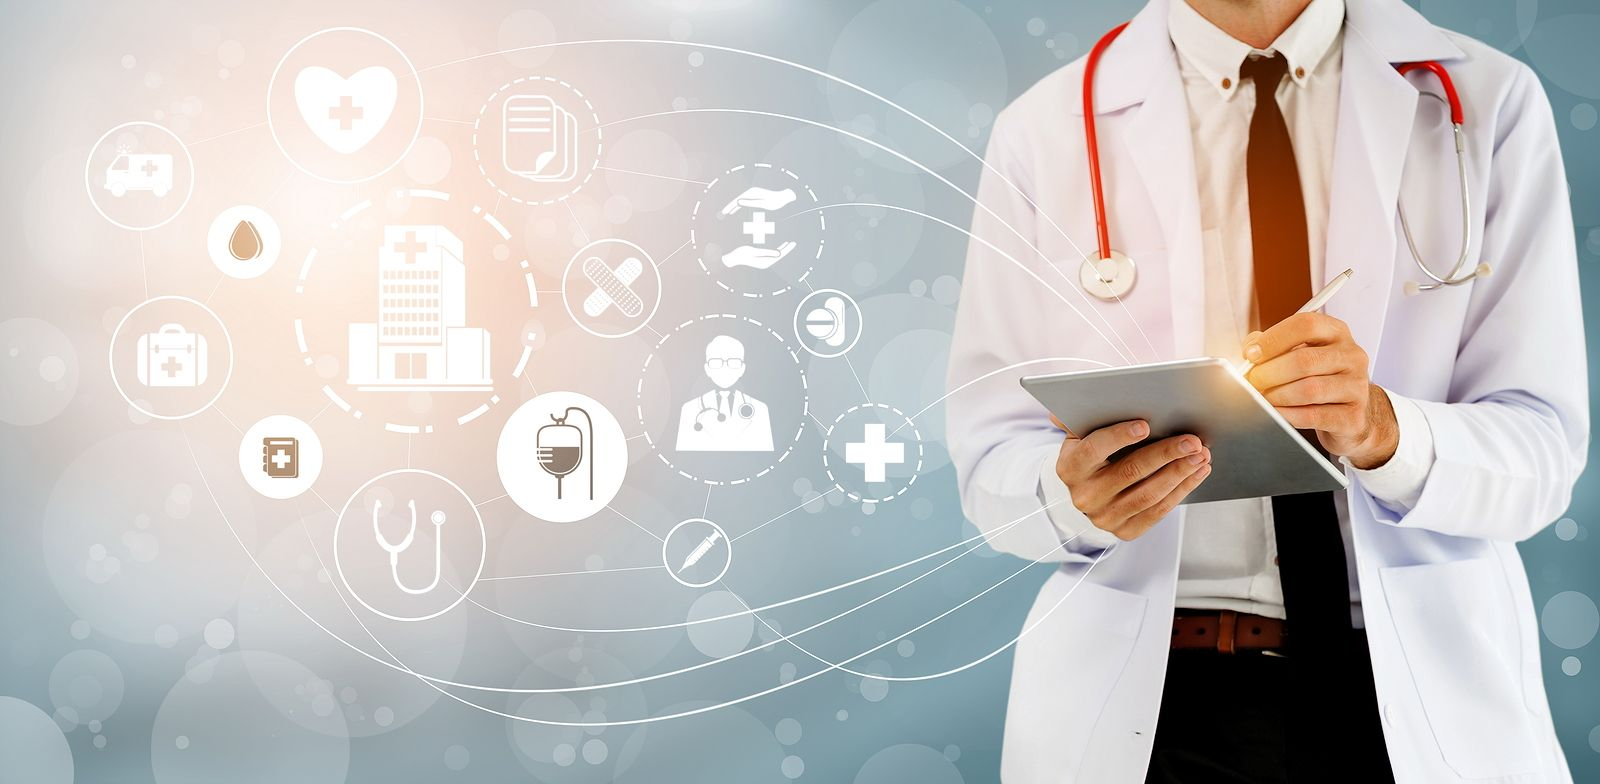 /iiot-in-the-healthcare-industry-can-free-up-hospital-beds-2n57334z feature image